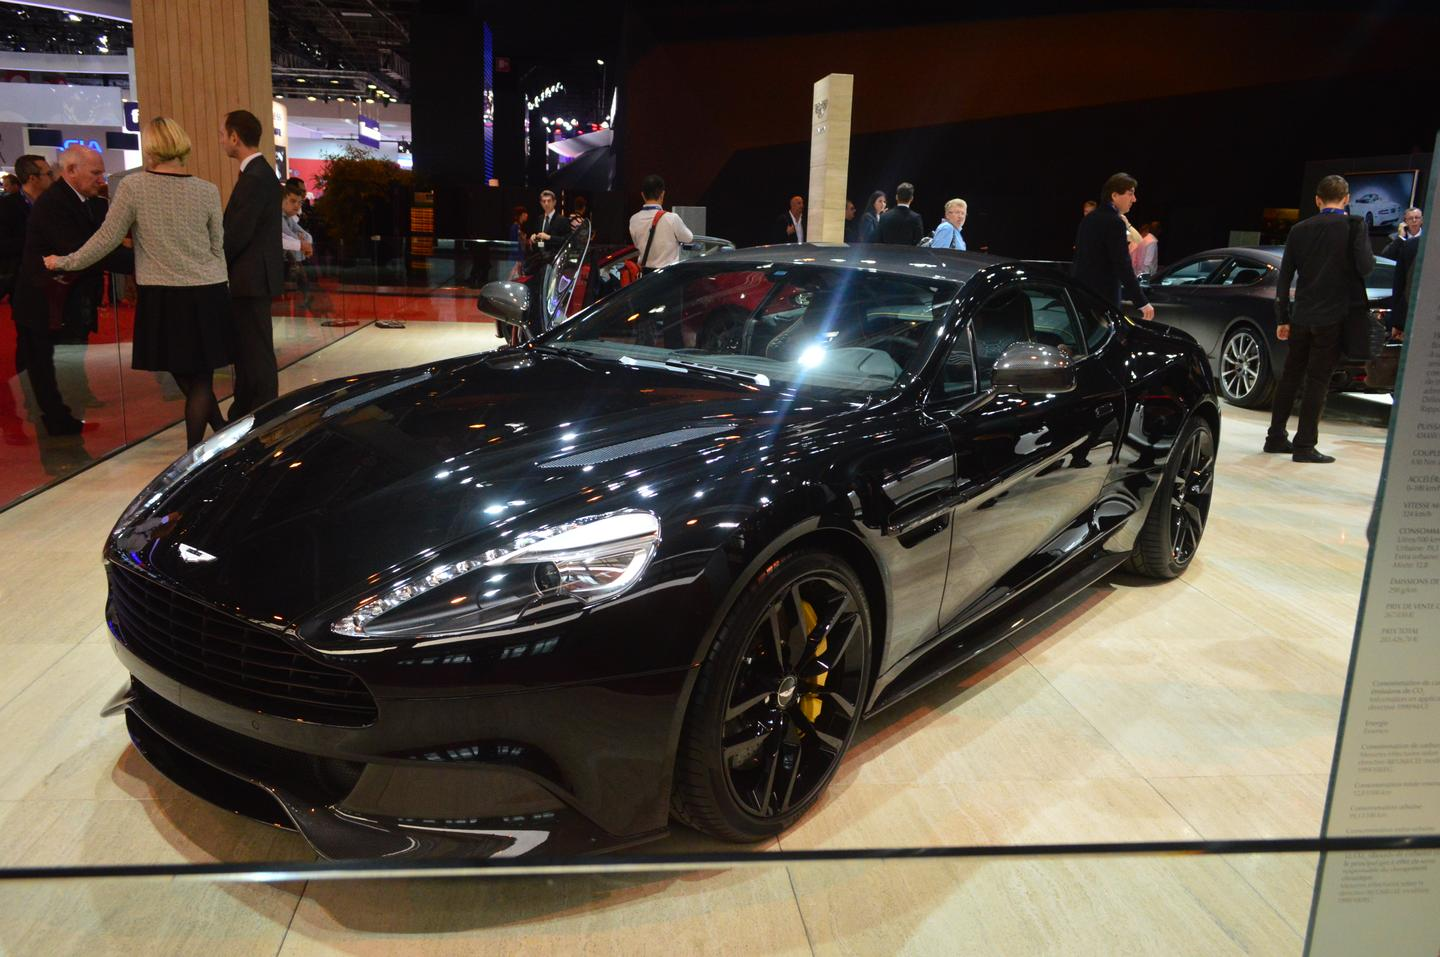 The 568-bhp Aston Martin Vanquish Carbon Edition (Photo: C.C. Weiss/Gizmag)